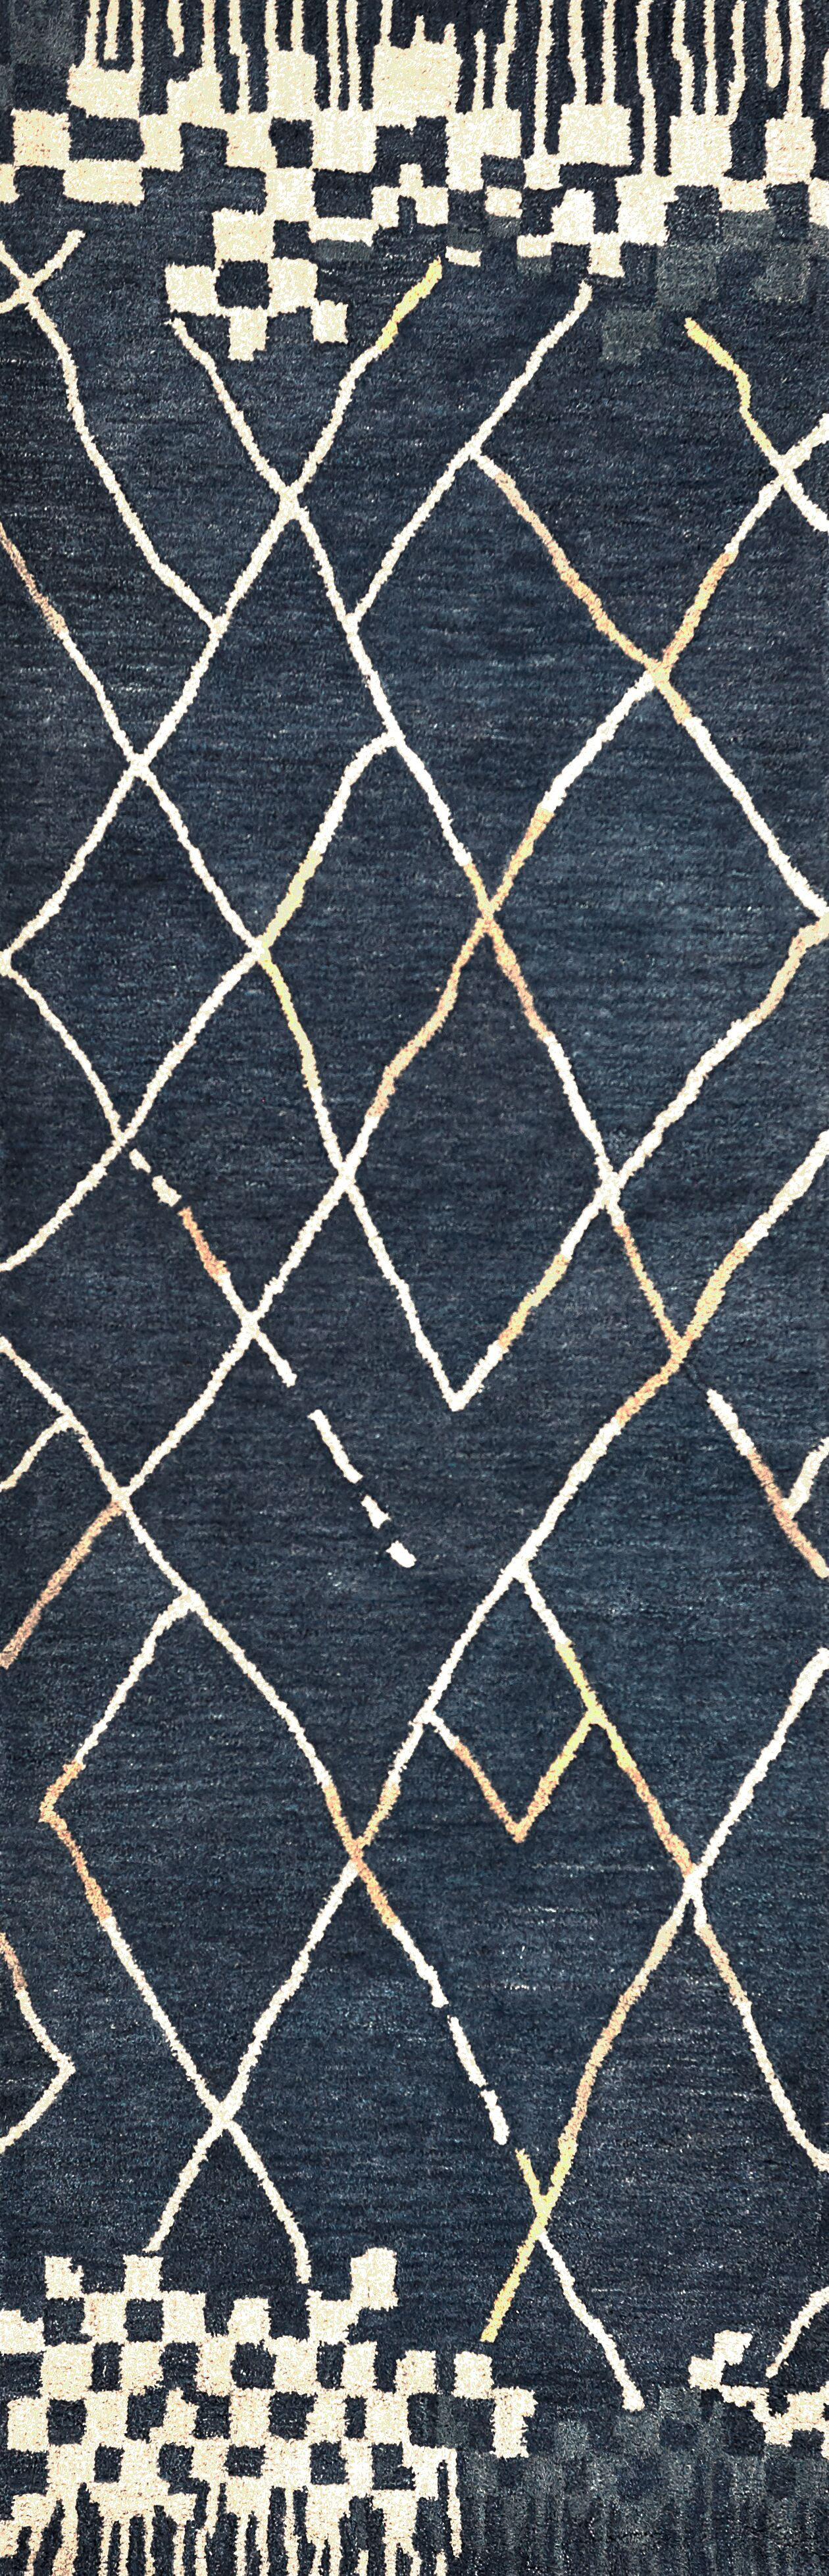 Hargis Hand-Tufted Wool Navy Area Rug Rug Size: Runner 2'6